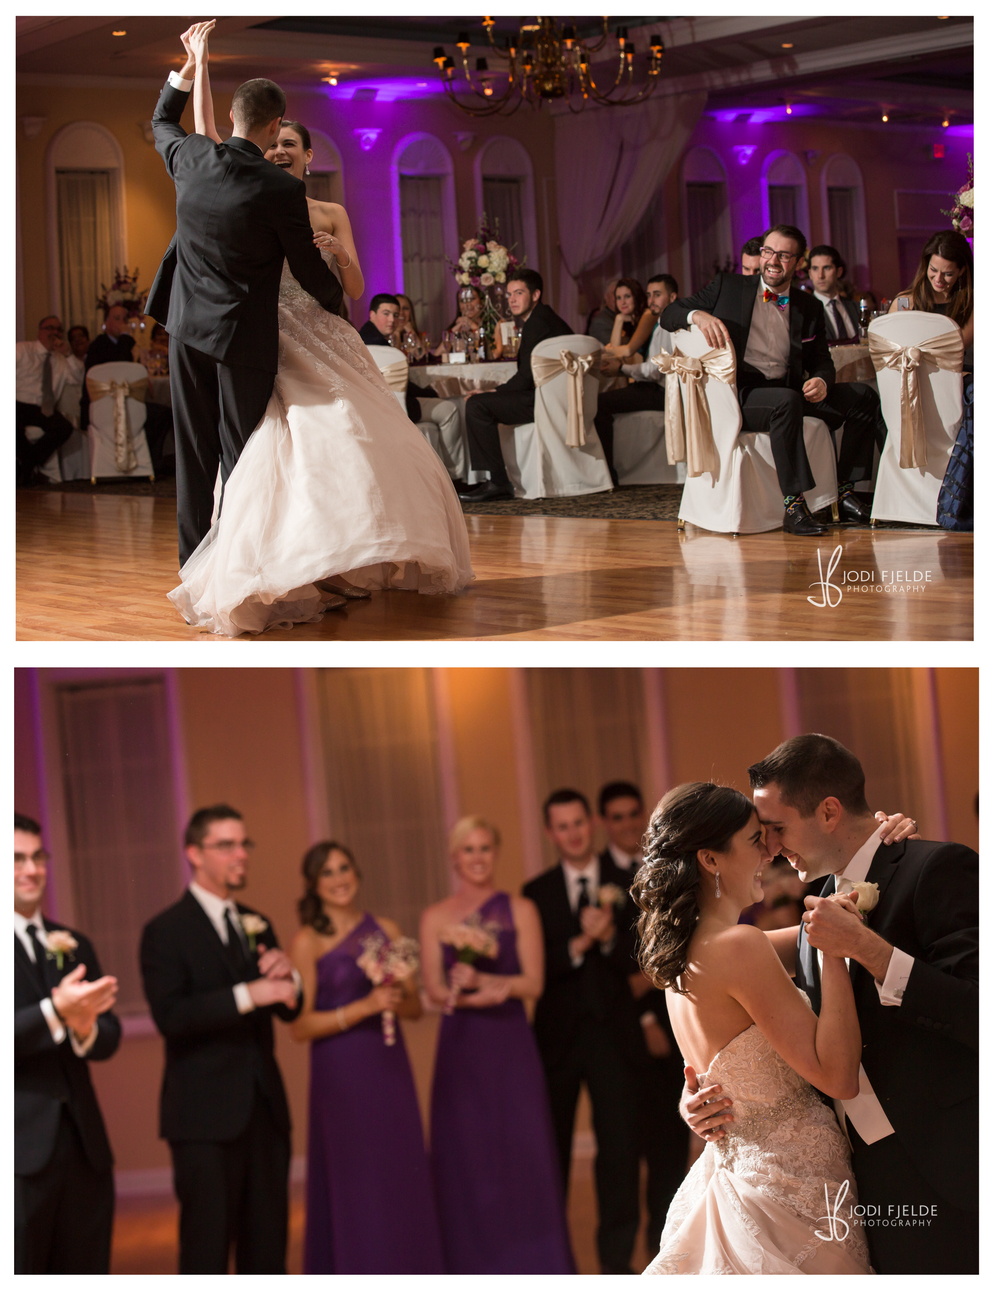 Benvenuto_Palm_Beach_Wedding_Jewish_Michelle & Jason_Jodi_Fjedle_Photography 47.jpg